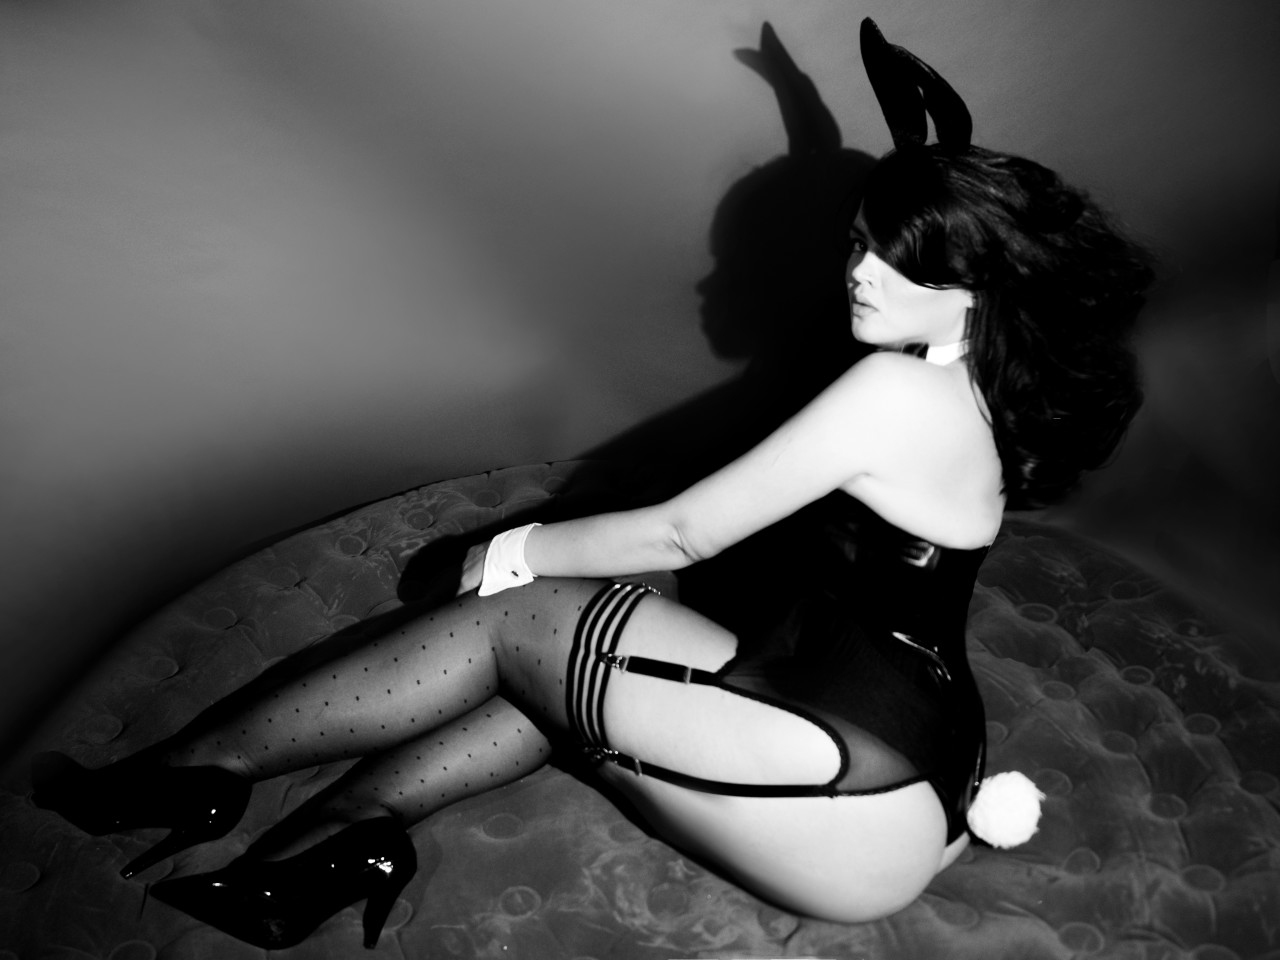 Playboy Bunny Costume: Fantasia Wear